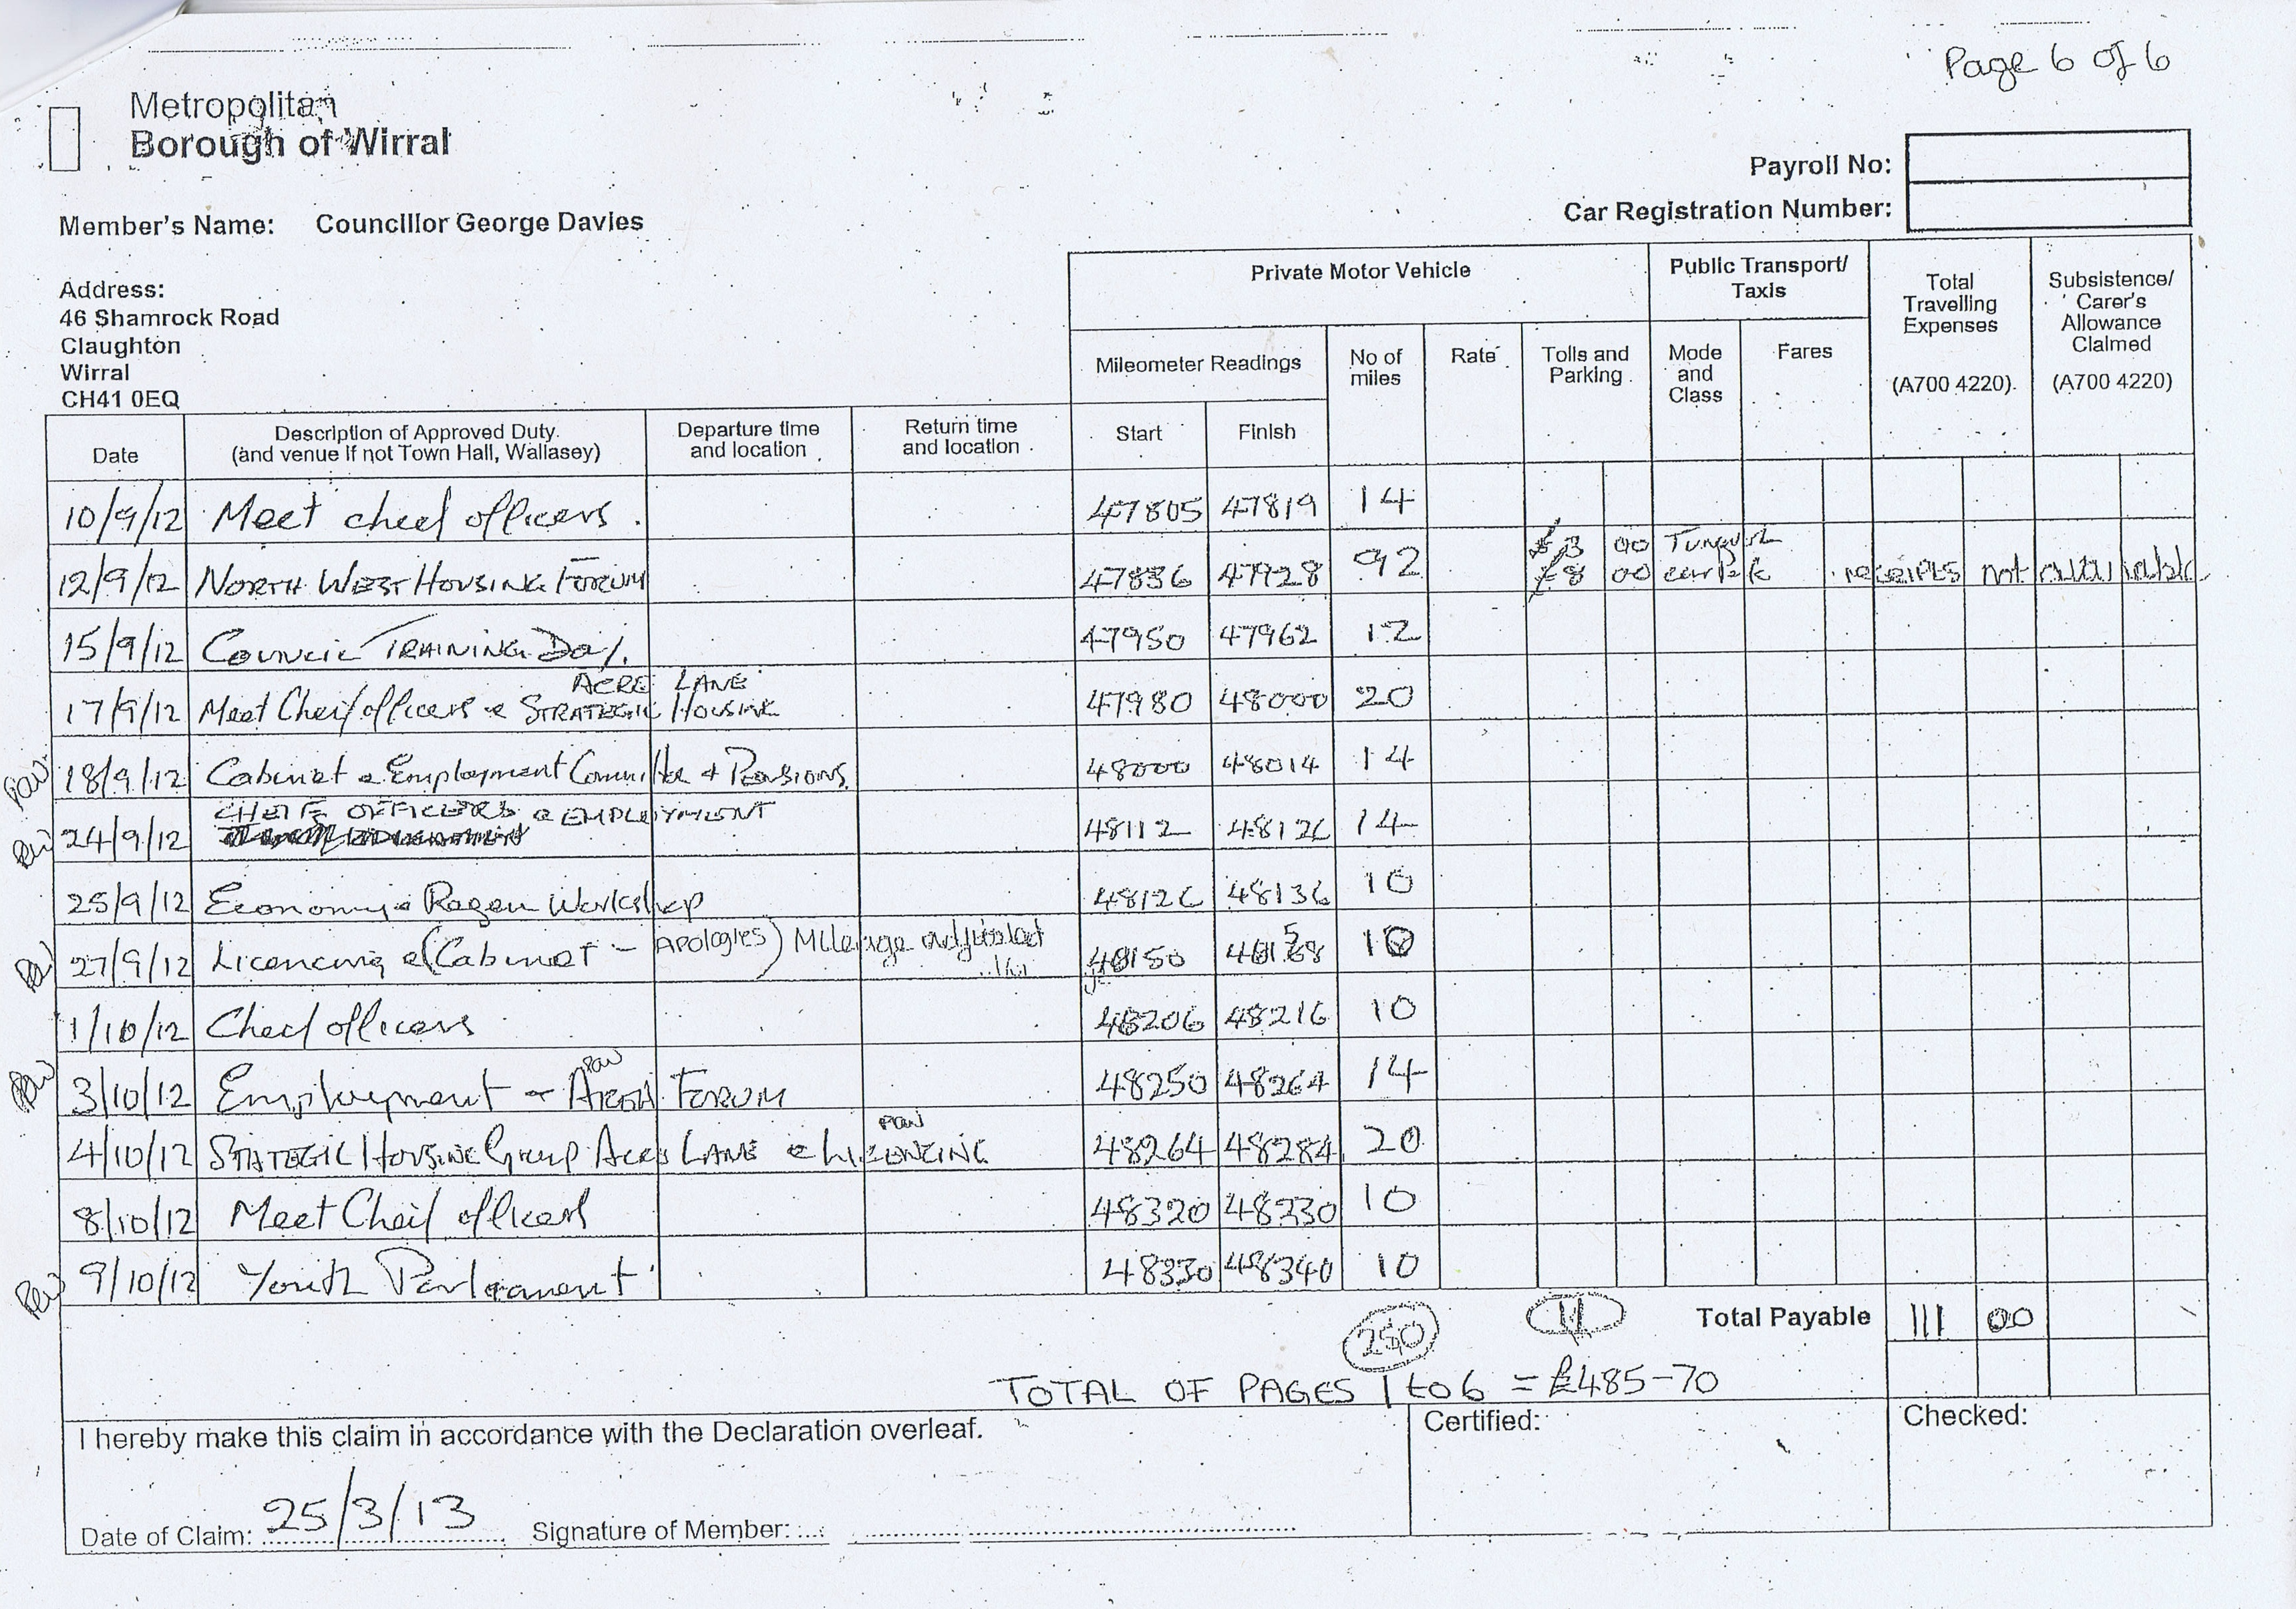 Expense claim forms for Councillor George Davies (Wirral